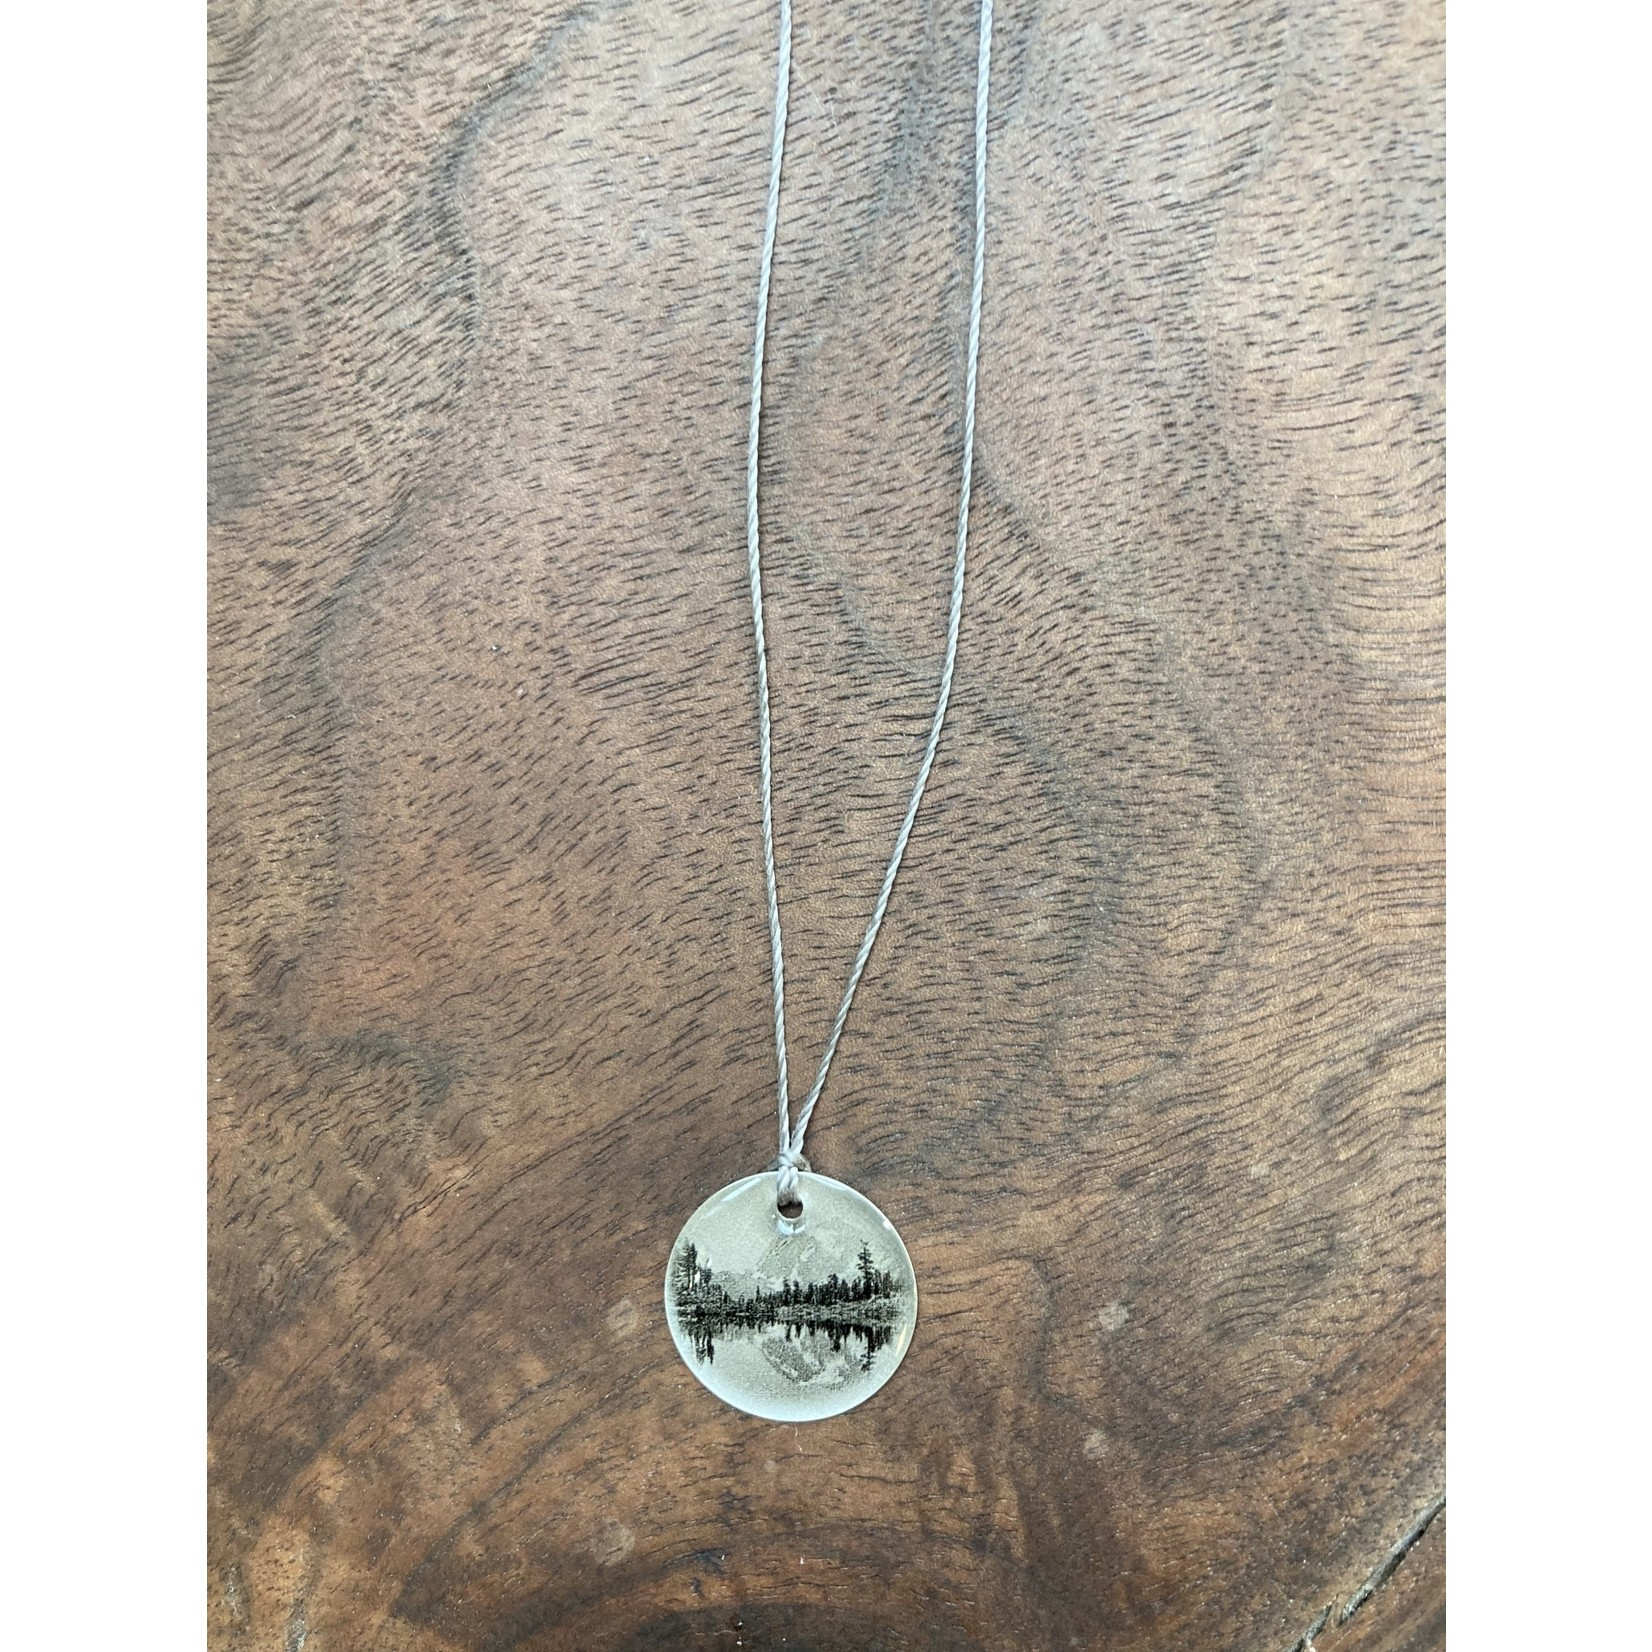 """Everyday Artifacts Everyday Artifacts    Alpine View - 3/4"""" Picture Pendant on Nylon Cord"""